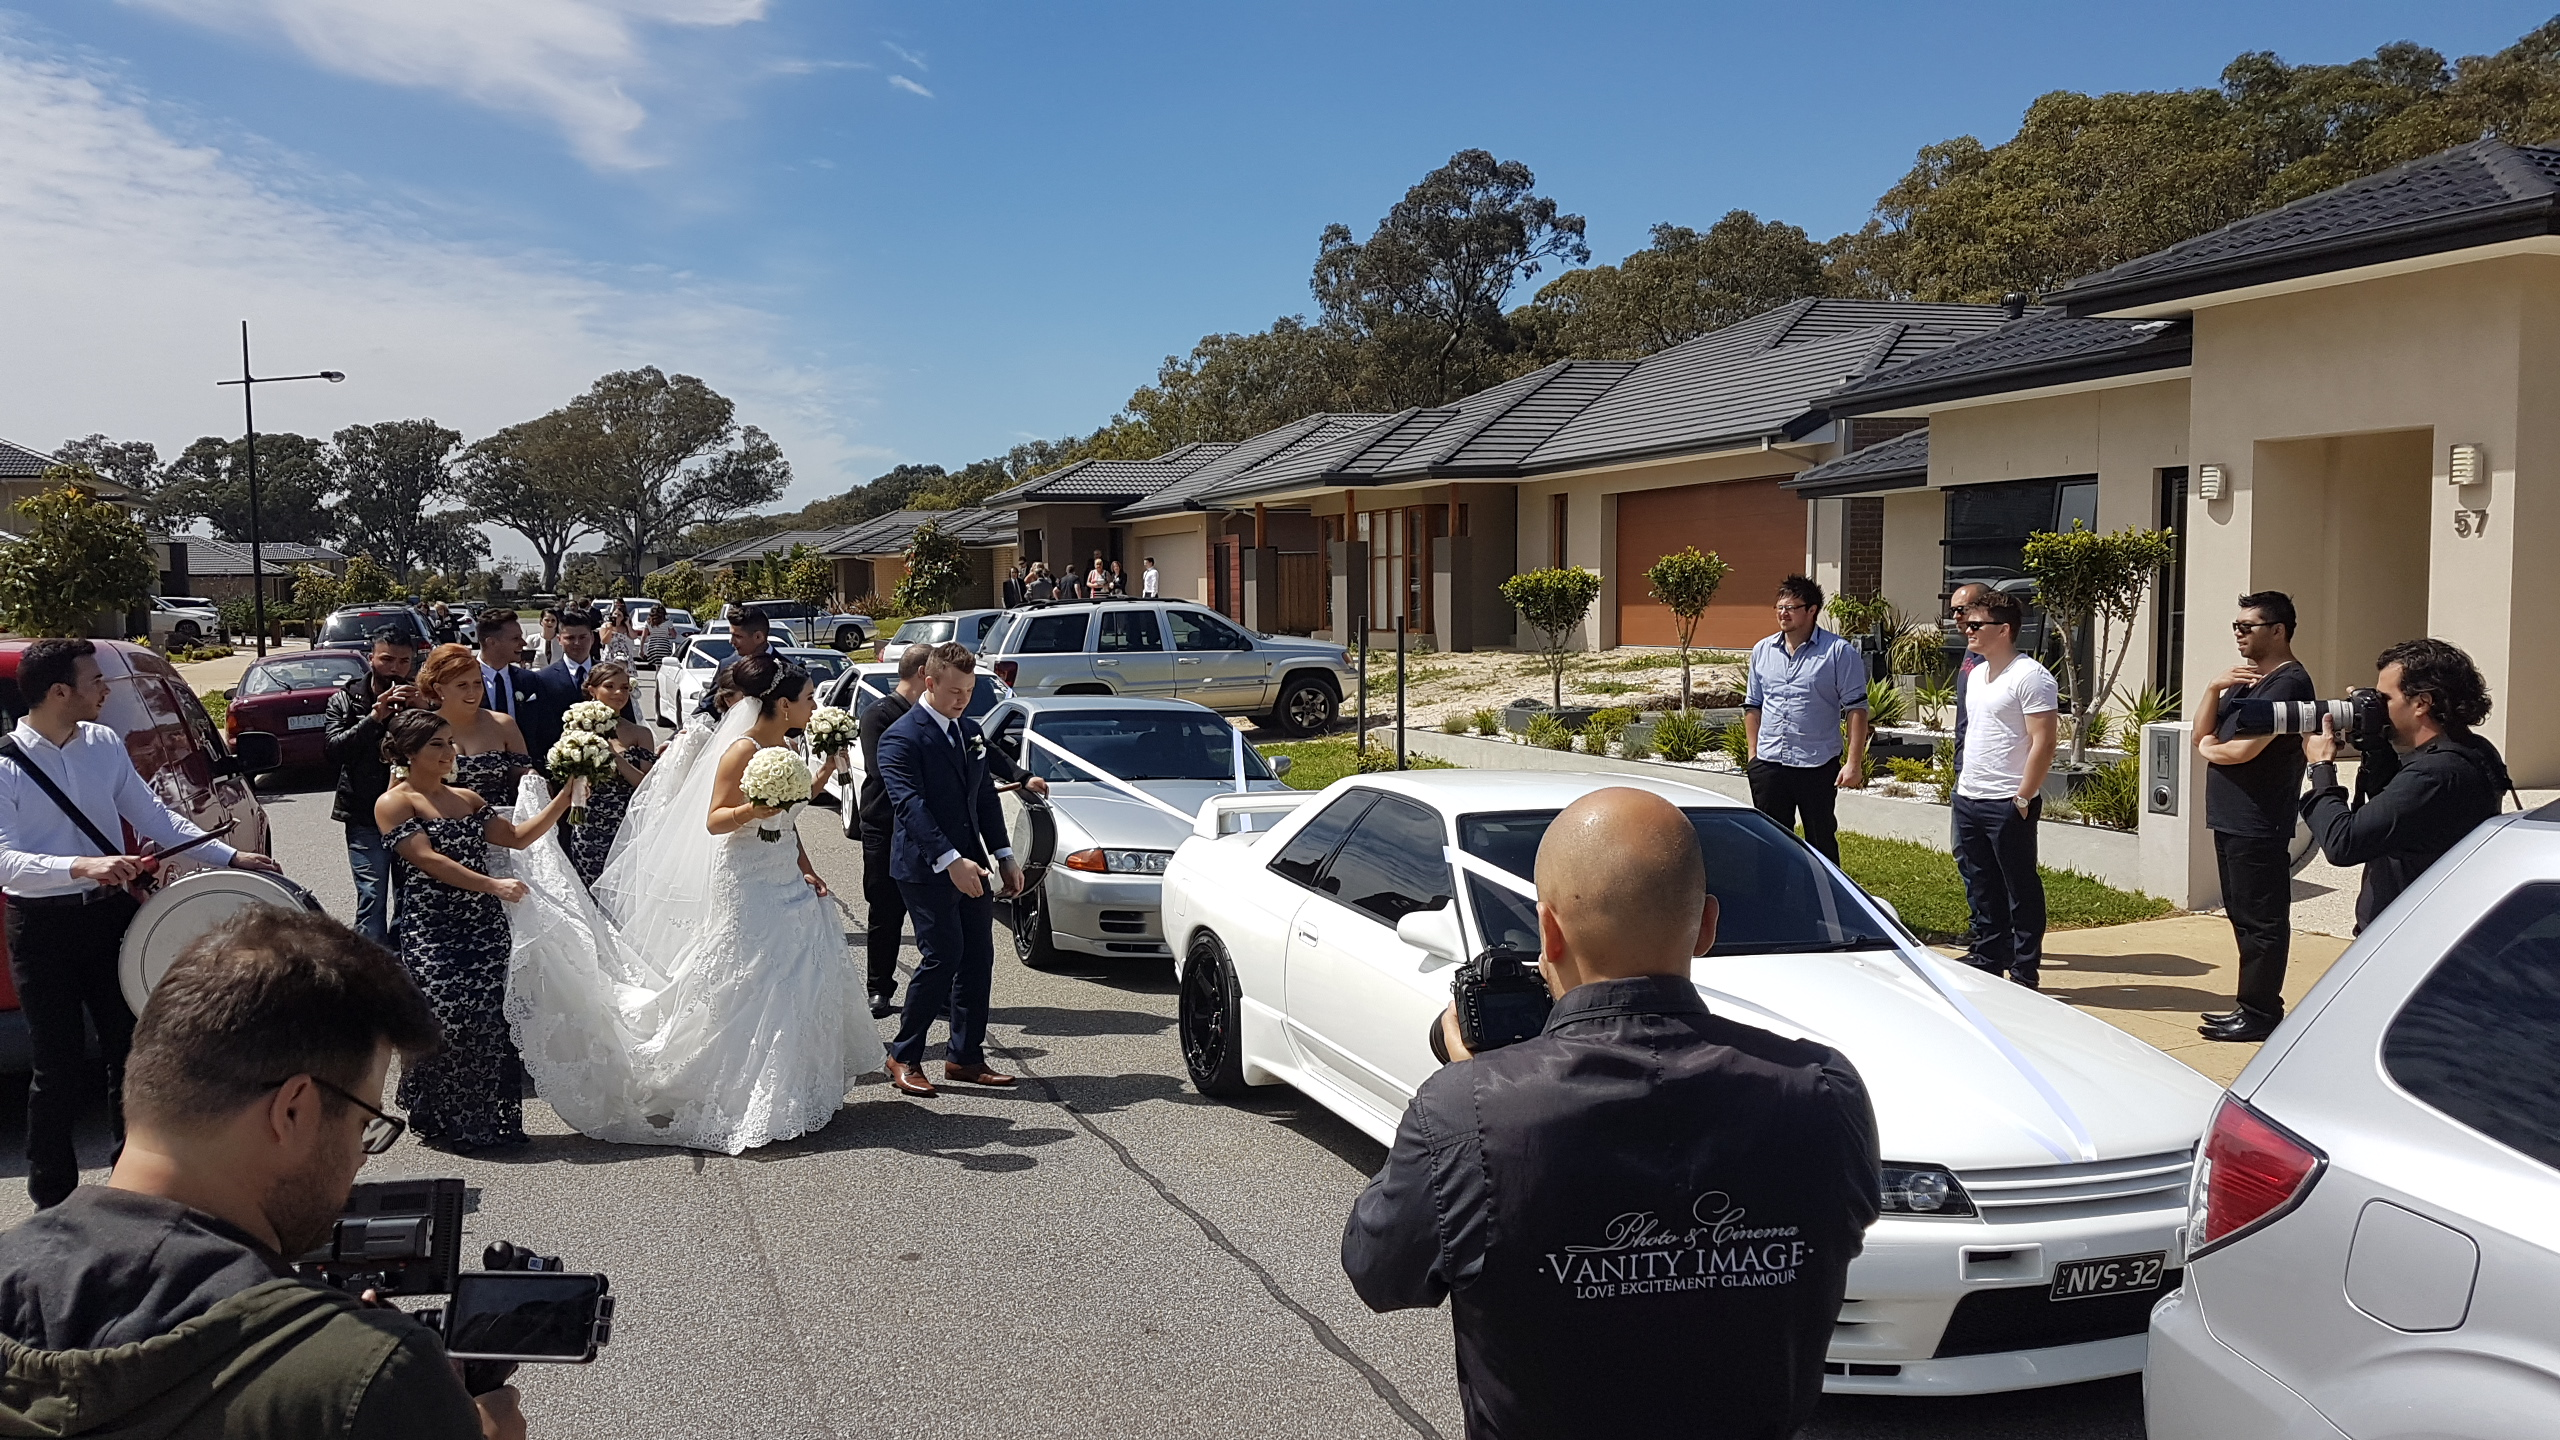 We organized a full day of wedding cars for this bride & groom. From pick up in the morning, to ceremony, reception, & night drop off. We can organize any cars at request. Get in contact NOW!